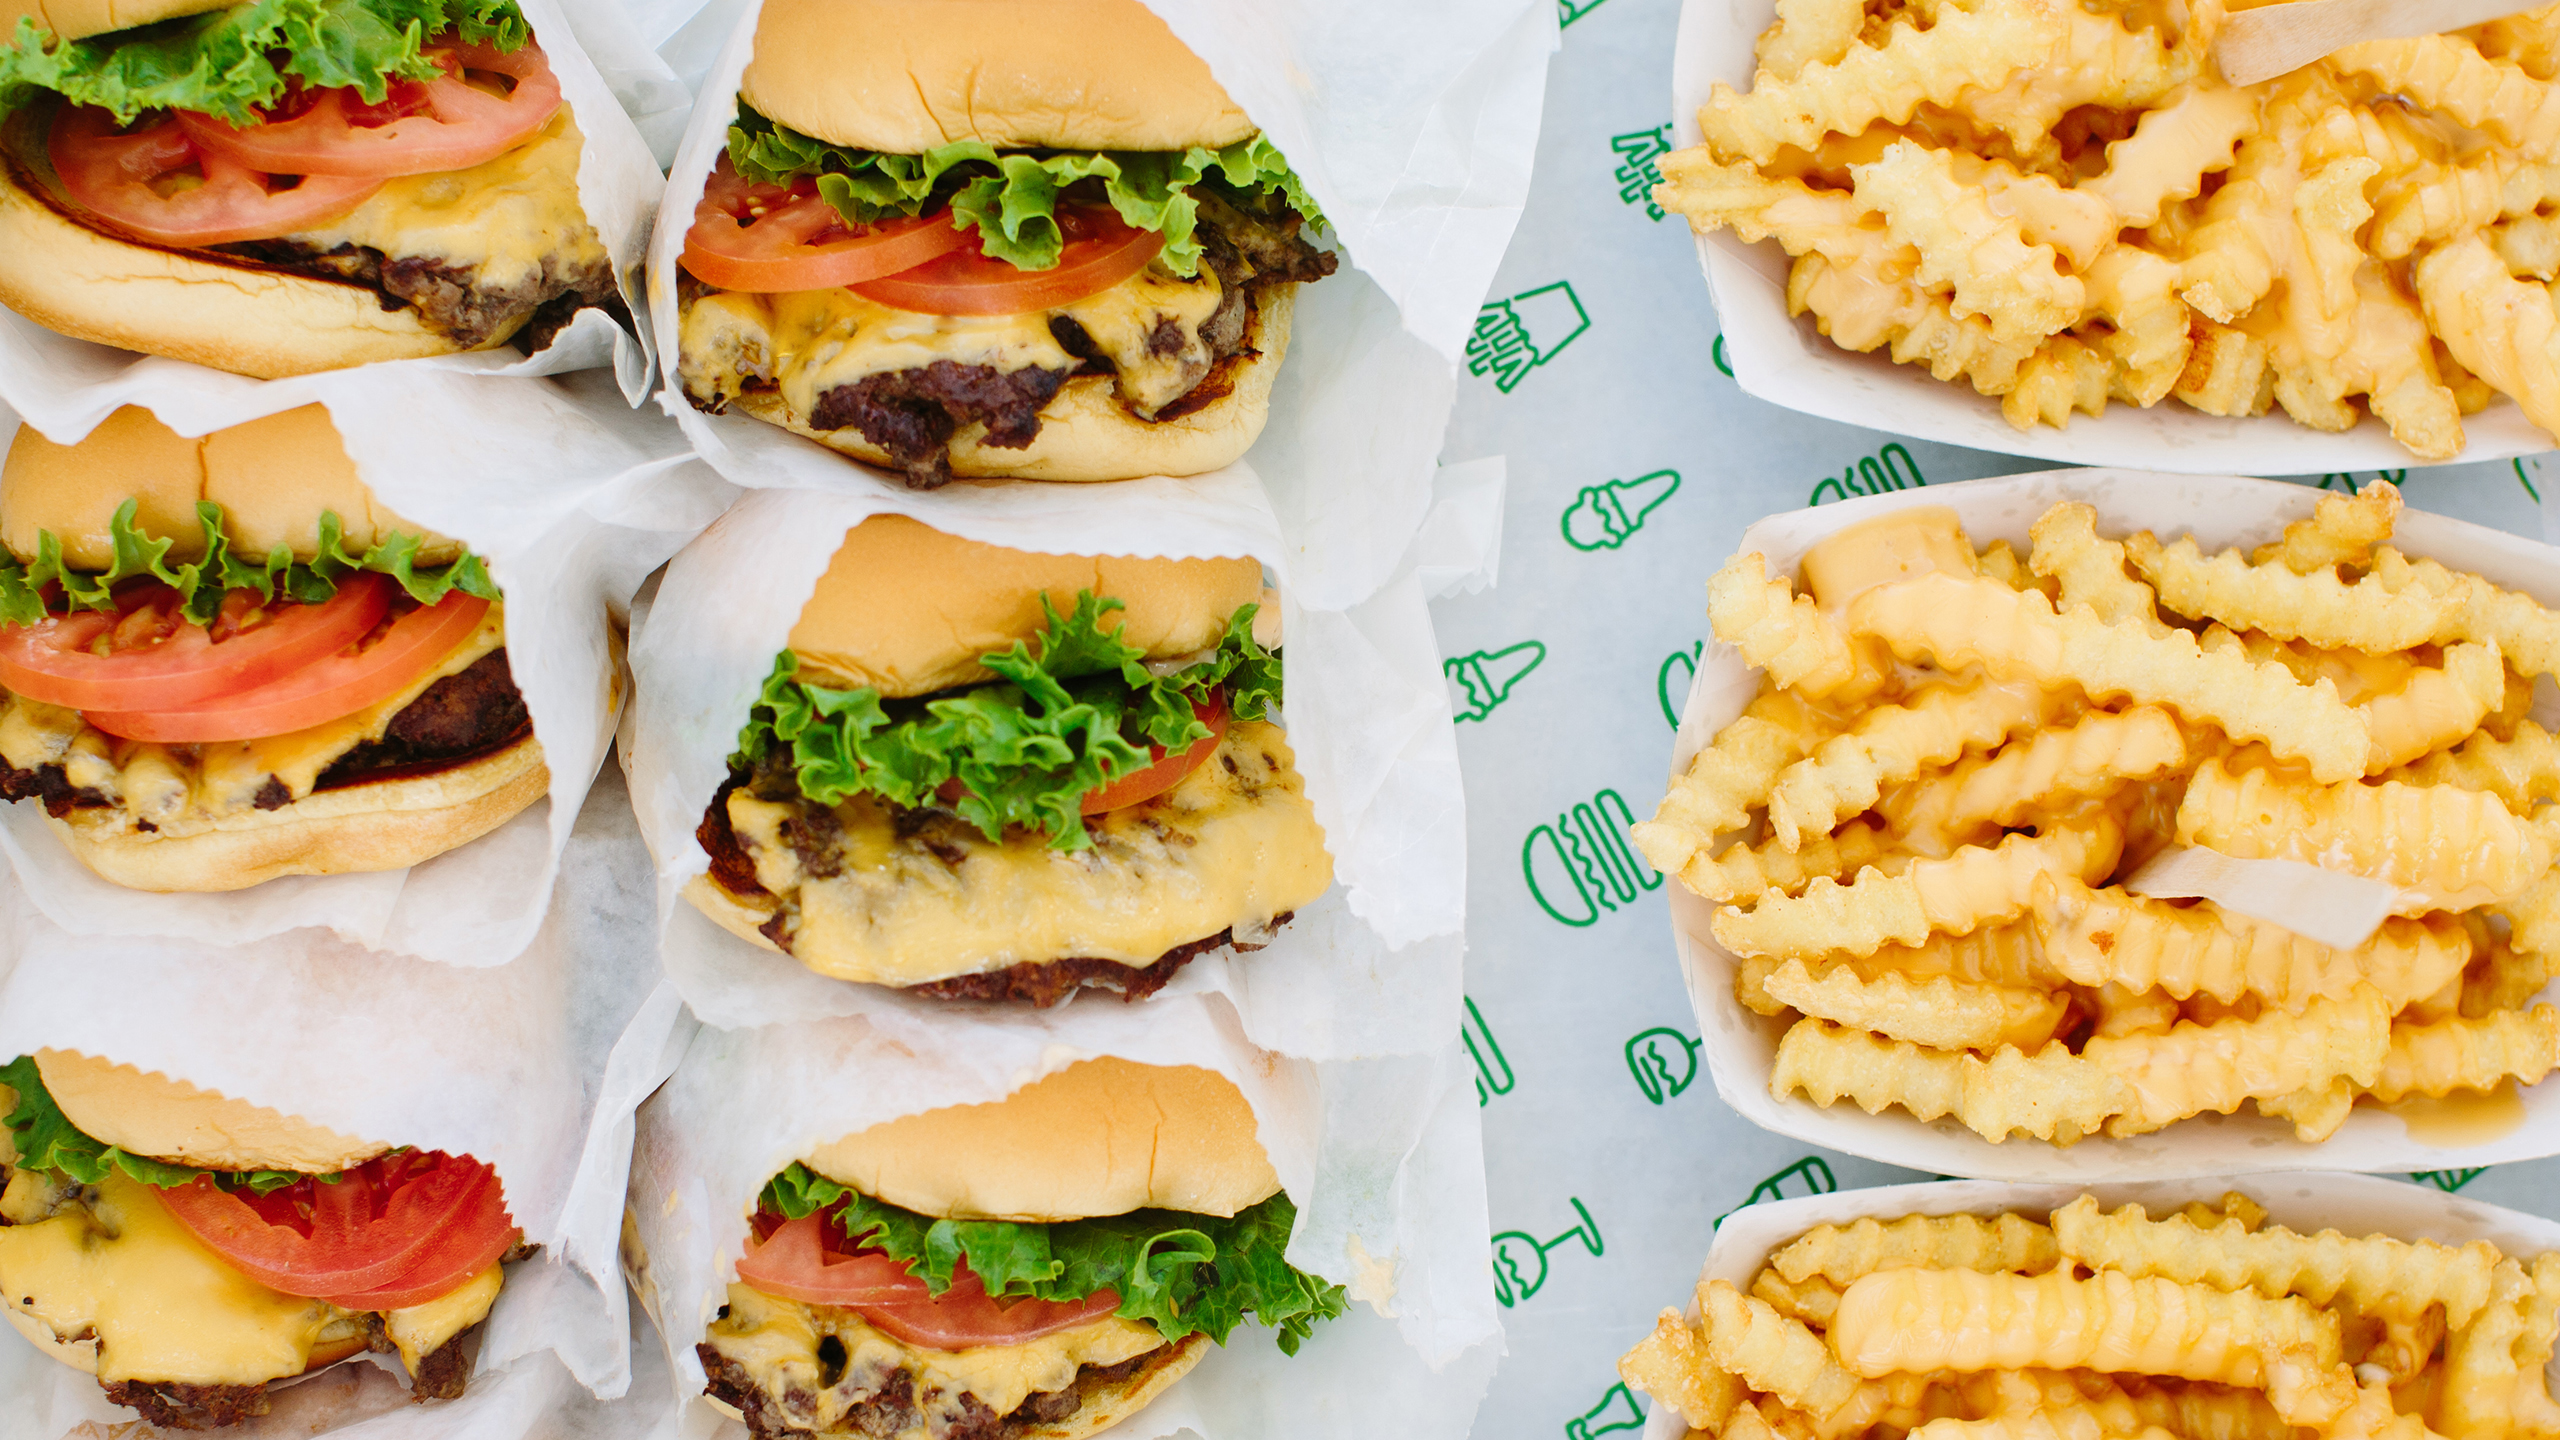 six shack burgers and three boats of crinkle cut fries